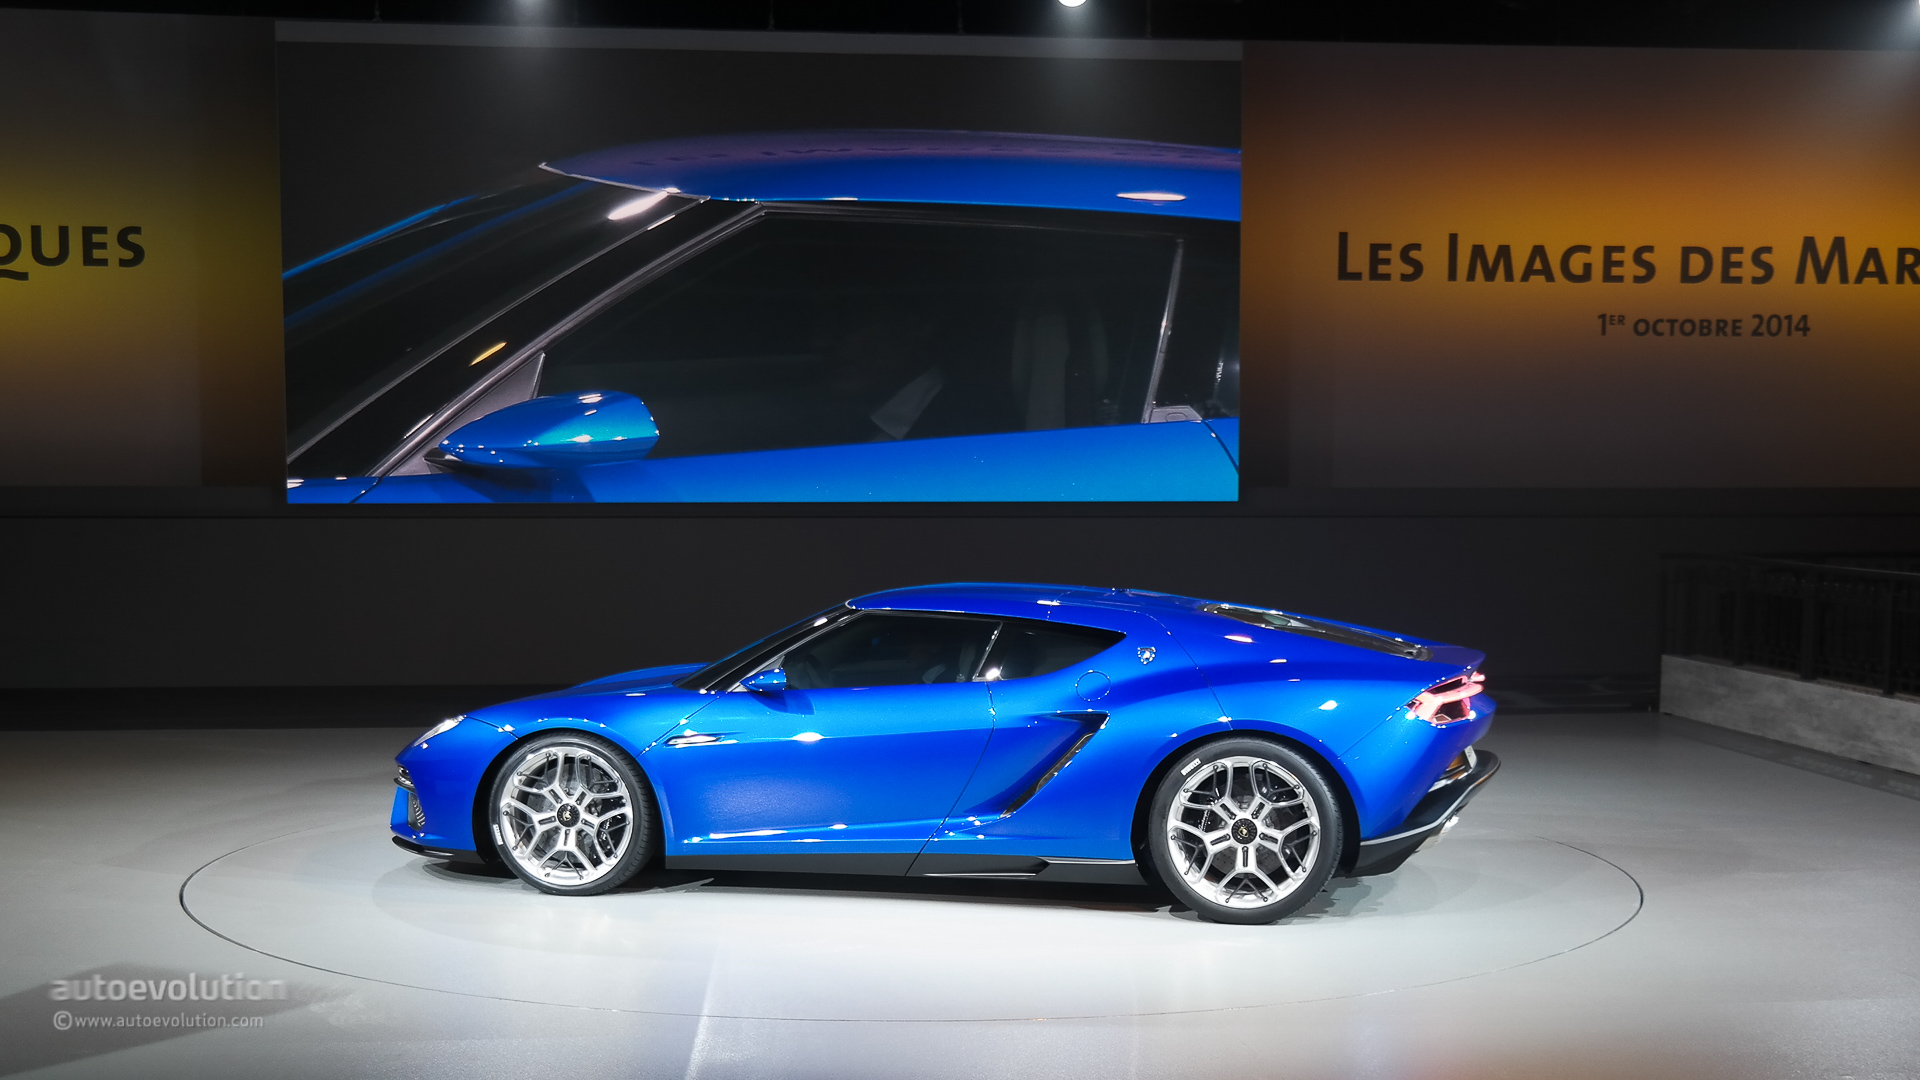 Lamborghini Asterion Lpi 910 4 Looks Like An Estoque Evora Mashup Live Photos Autoevolution